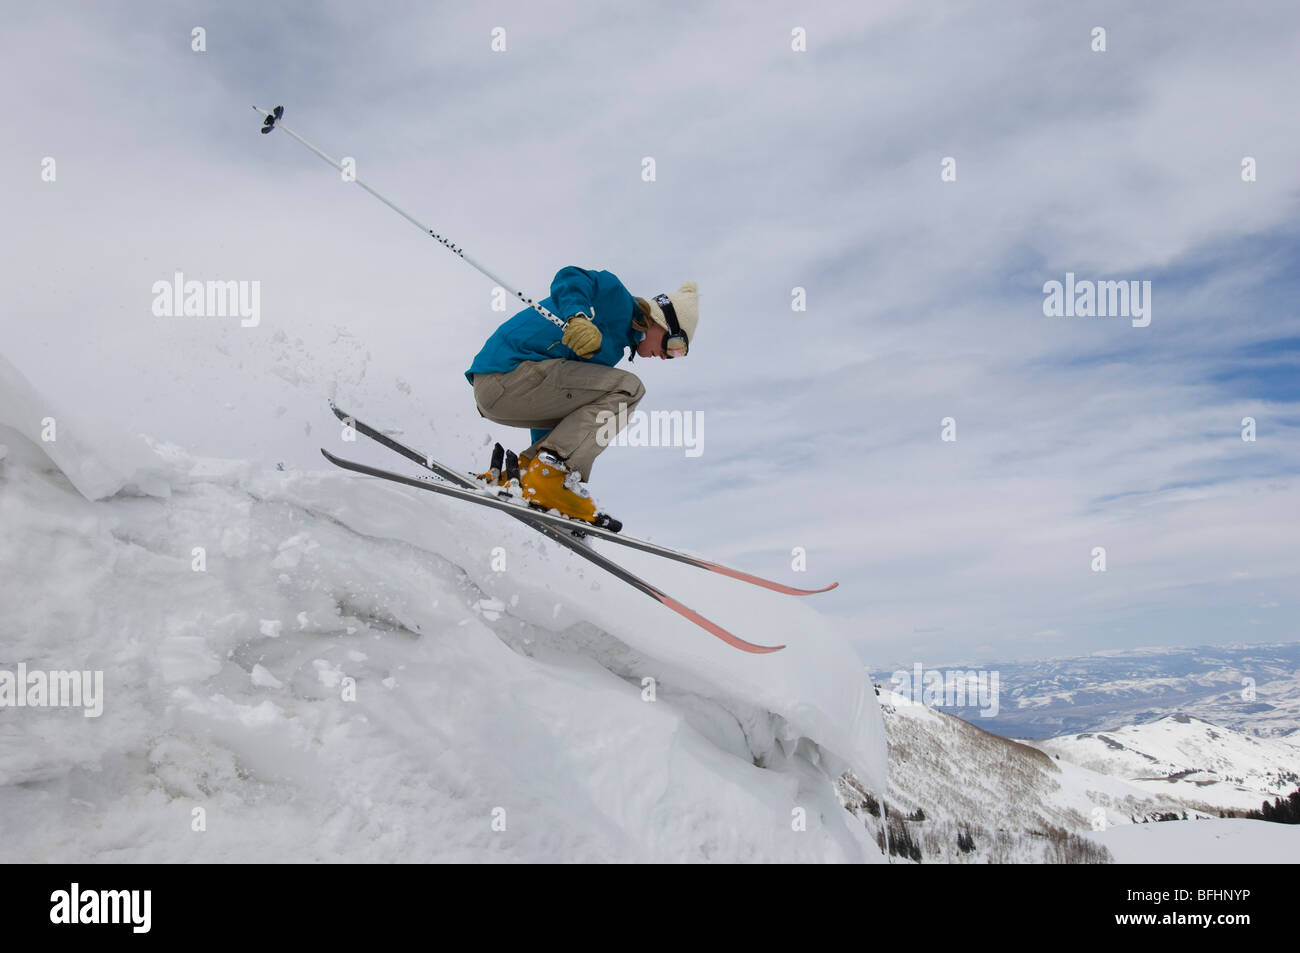 Skier Jumping Off Icy Overhang - Stock Image